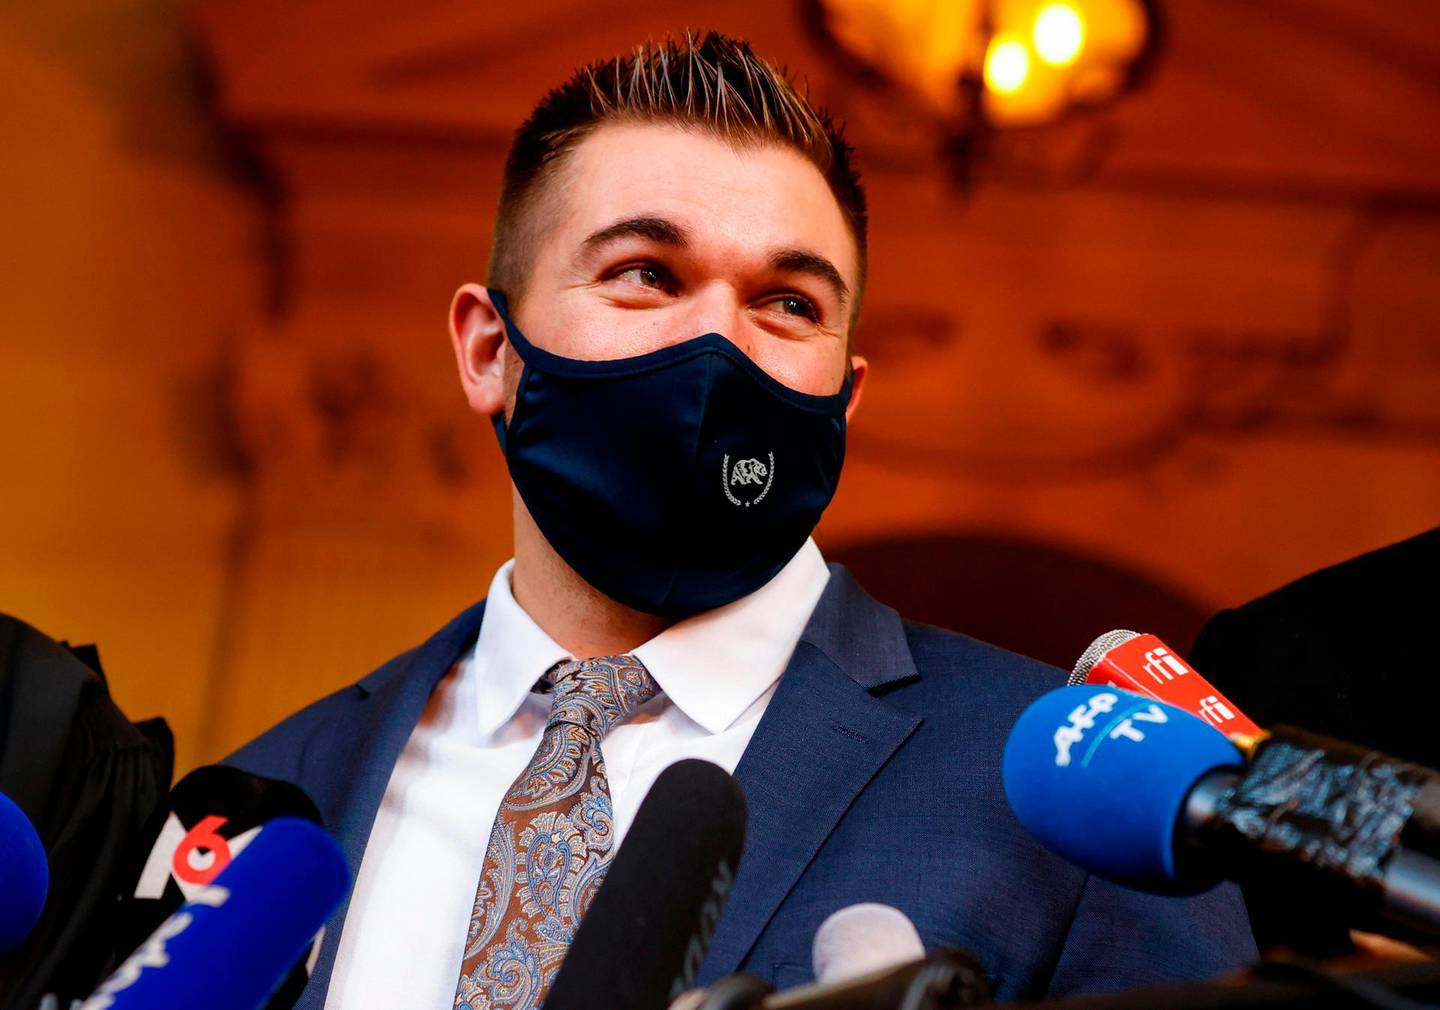 """US former serviceman Alek Skarlatos speaks to the press at the """"Palais de Justice"""" courthouse in Paris, on November 20, 2020, on the second day of the trial of Ayoub El Khazzani, a Moroccan man whose attempted terror attack on an Amsterdam-Paris Thalys train in 2015 was foiled by passengers, including Sadler who tackled him along with his friends Spencer Stone and Alek Skarlatos, then off-duty US soldiers. Ayoub El Khazzani and three alleged accomplices went on trial in Paris on November 16 for the attempted terror attack foiled by passengers. Gunman Ayoub El Khazzani was tackled by passengers shortly after emerging bare-chested and heavily armed from a toilet on a Thalys high-speed train on August 21, 2015. There were some 150 passengers in the carriage with Khazzani, who had an AK47 slung over his back, and a bag of nearly 300 rounds of ammunition. / AFP / Thomas SAMSON"""